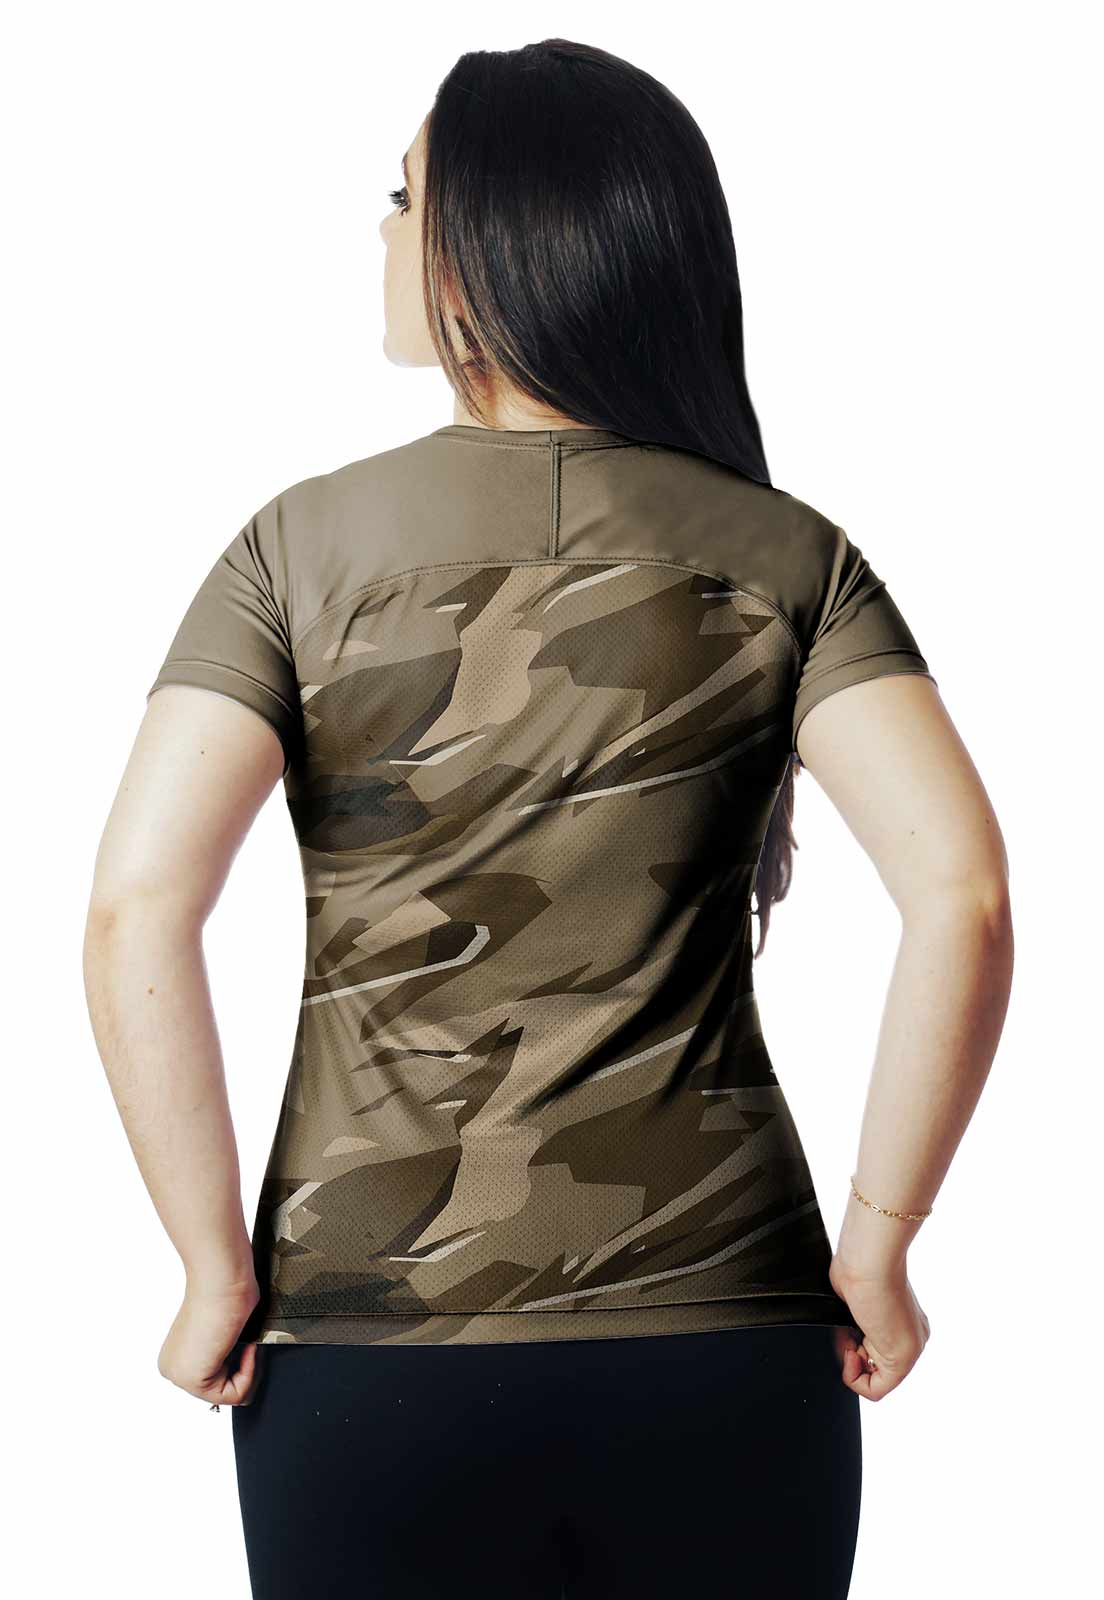 CAMISA DE PESCA DIA PROTEÇÃO UV PARABELLUM 01 REAL HUNTER FEMININA  - REAL HUNTER OUTDOORS